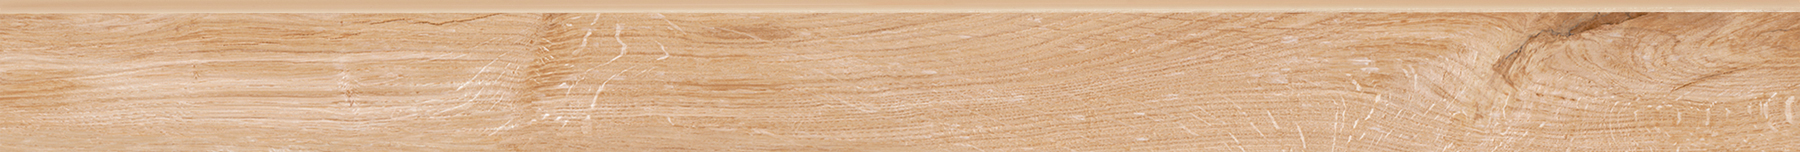 plintus-briccole-wood-beige-skirting image 1